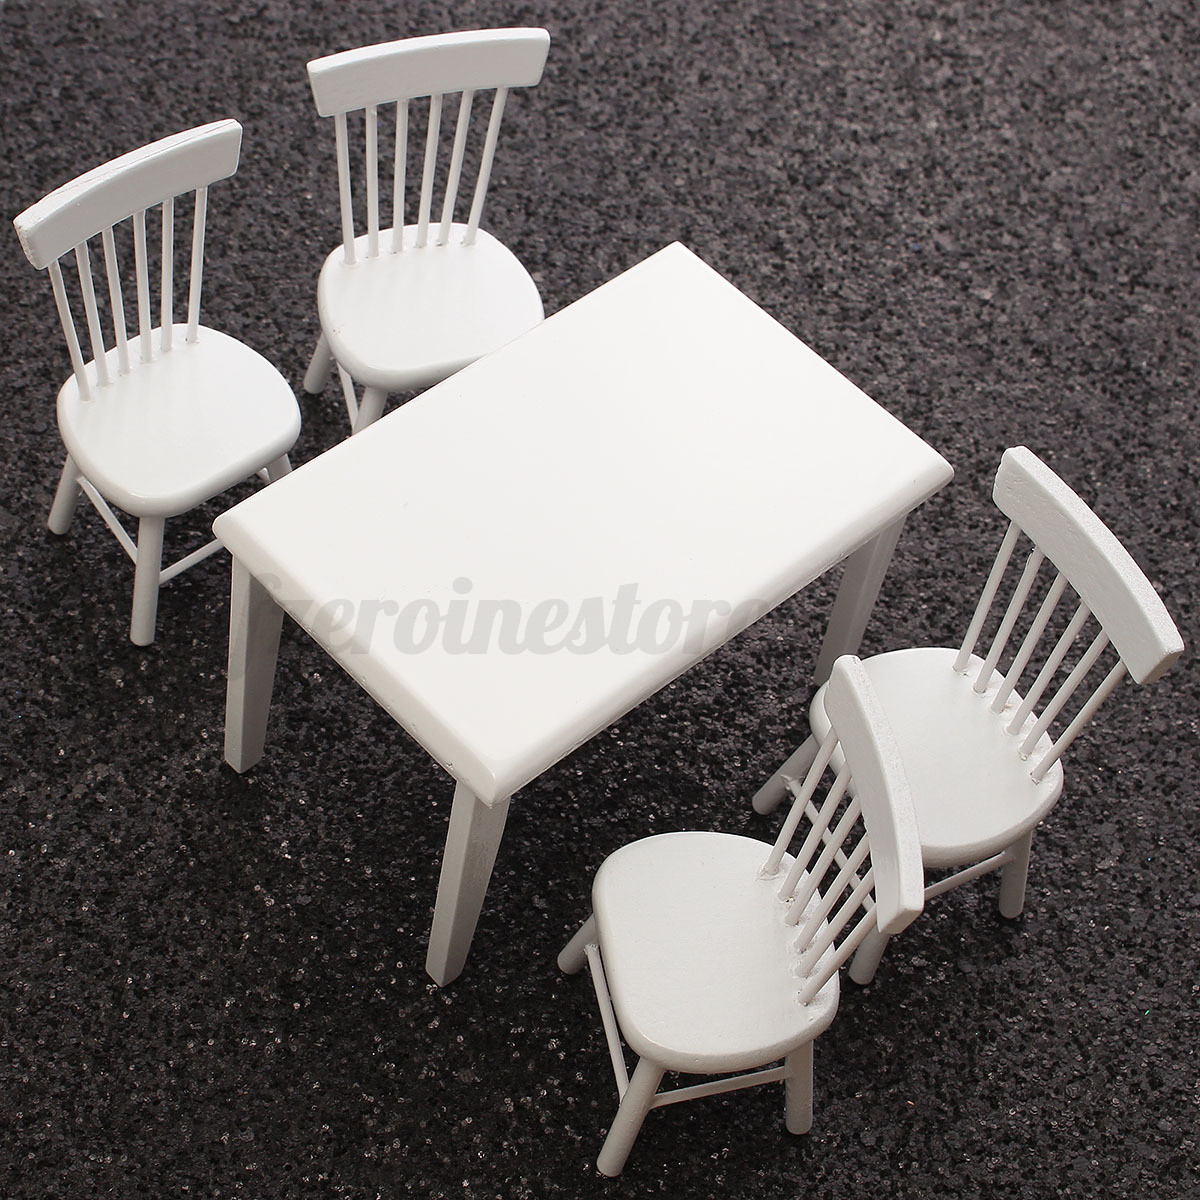 1 12 Scale Diy Dollhouse Miniature Furniture Accessories For Home Decor Ebay